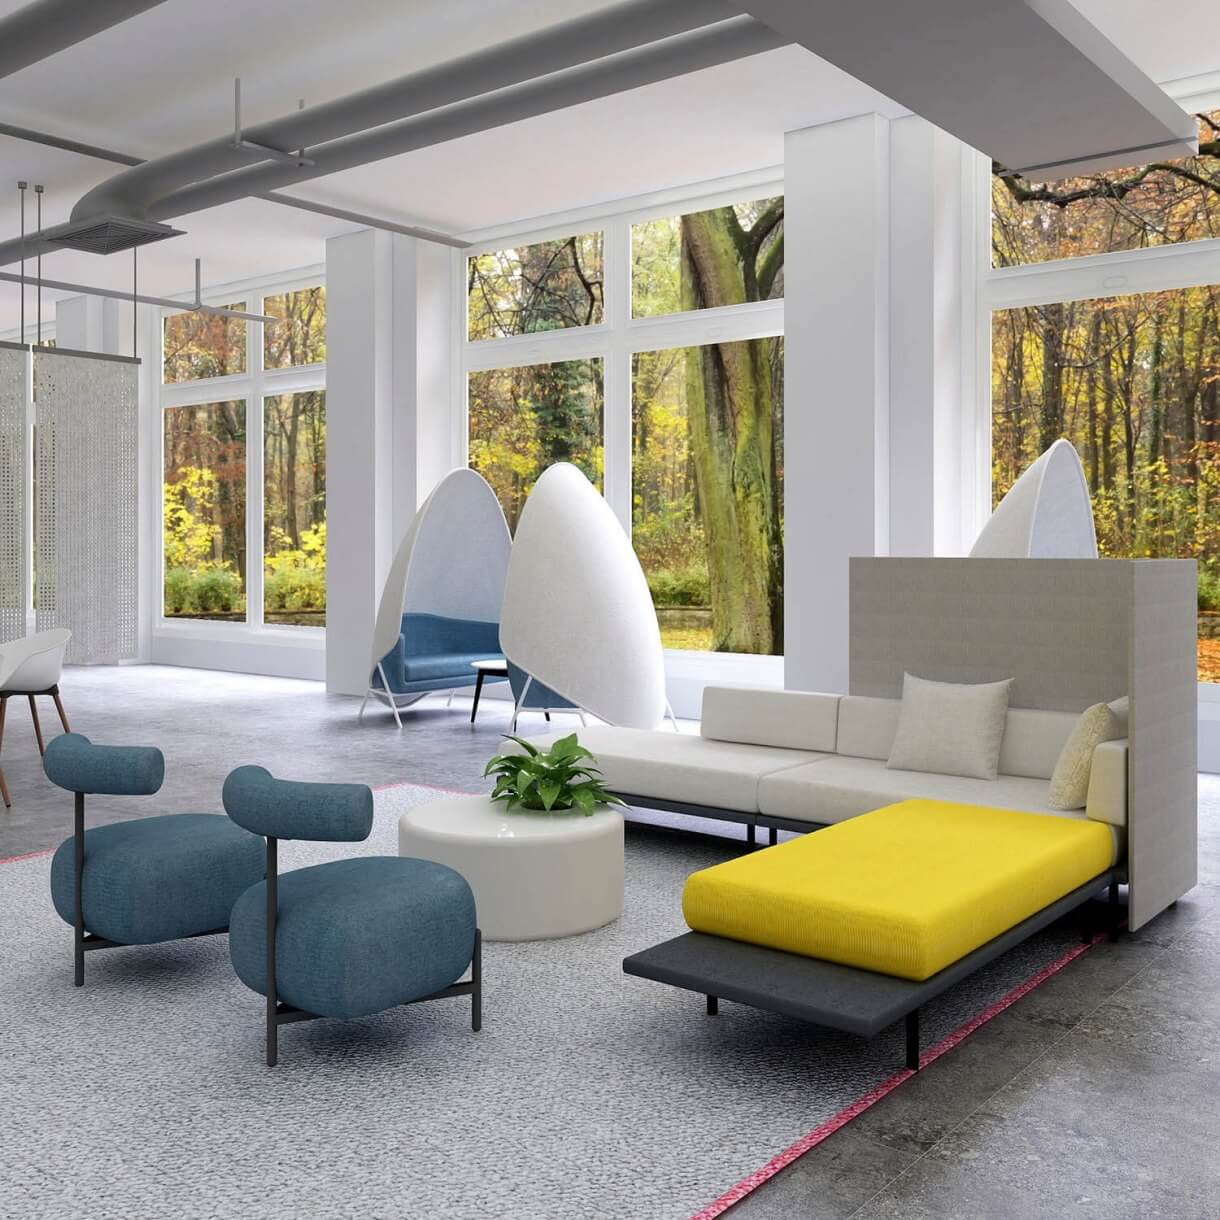 Spaceship Inspired Sofa Layout Arrangement Ideas for the Office Reception - Comfort Furniture